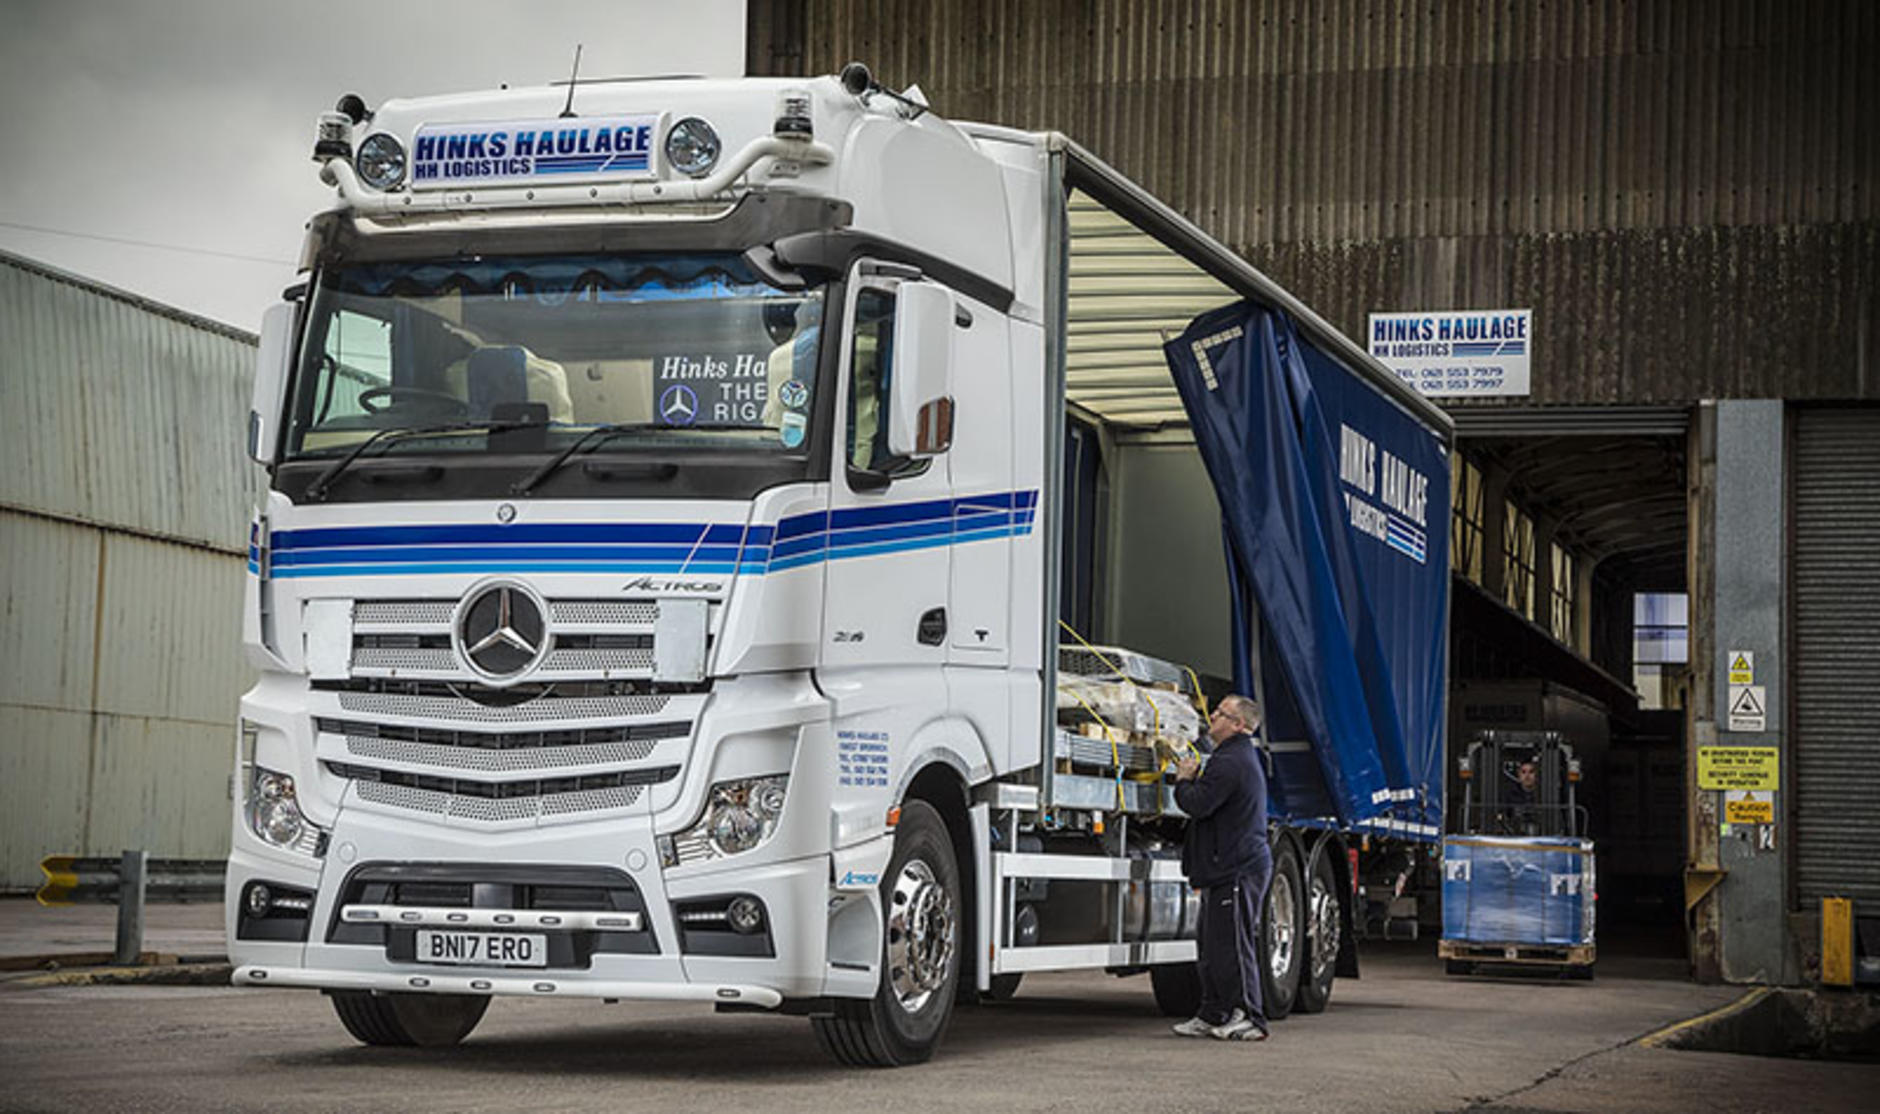 Hinks Haulage Mercedes-Benz Acros